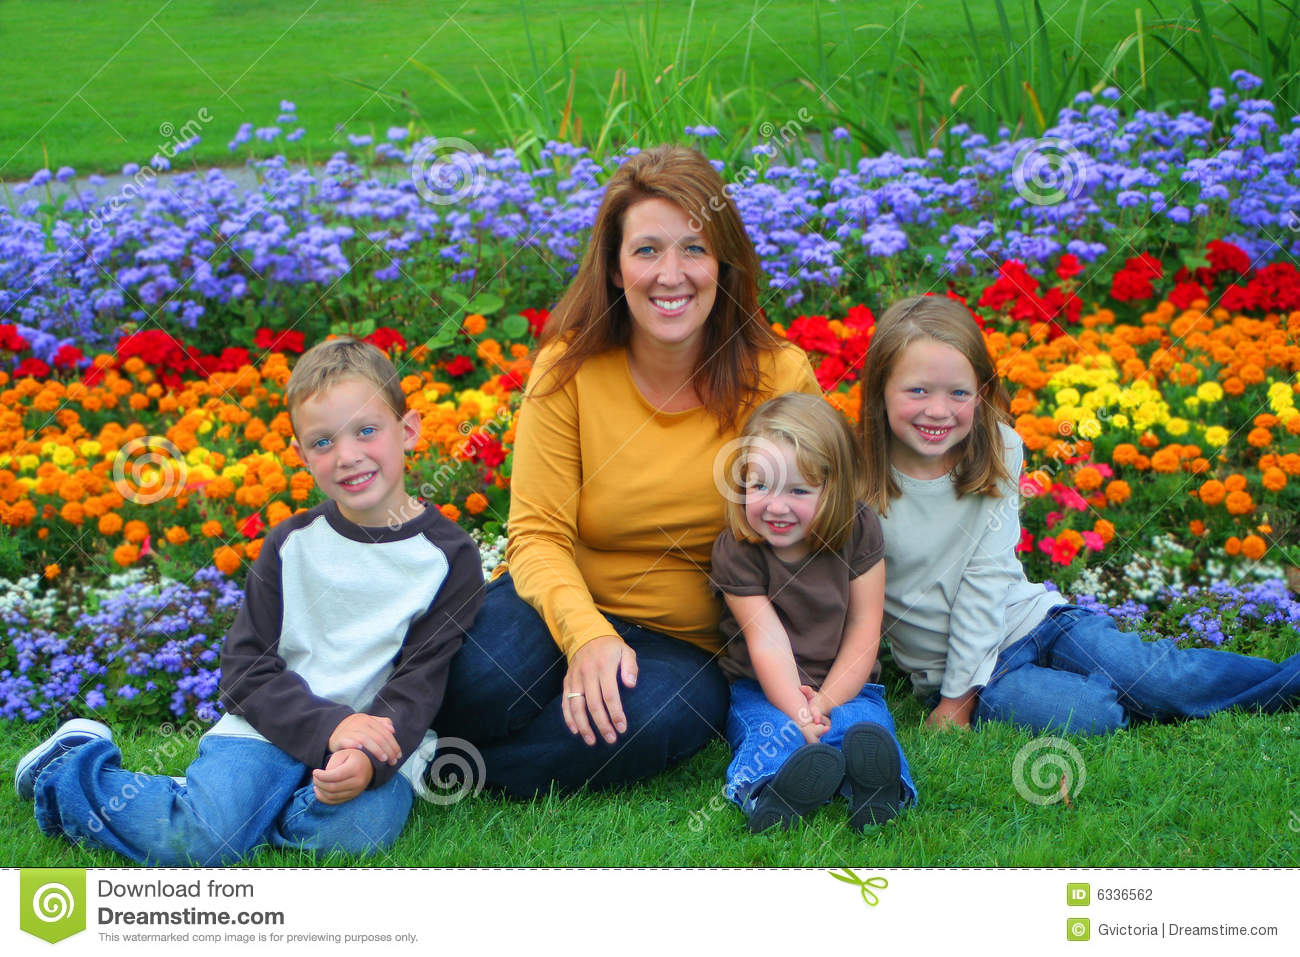 pennington single parent personals For many single parents, dating is exciting and scary at the same time on one hand, you can hardly contain your enthusiasm for your new love interest yet, you may be plagued with questions about when and how to introduce your kids.